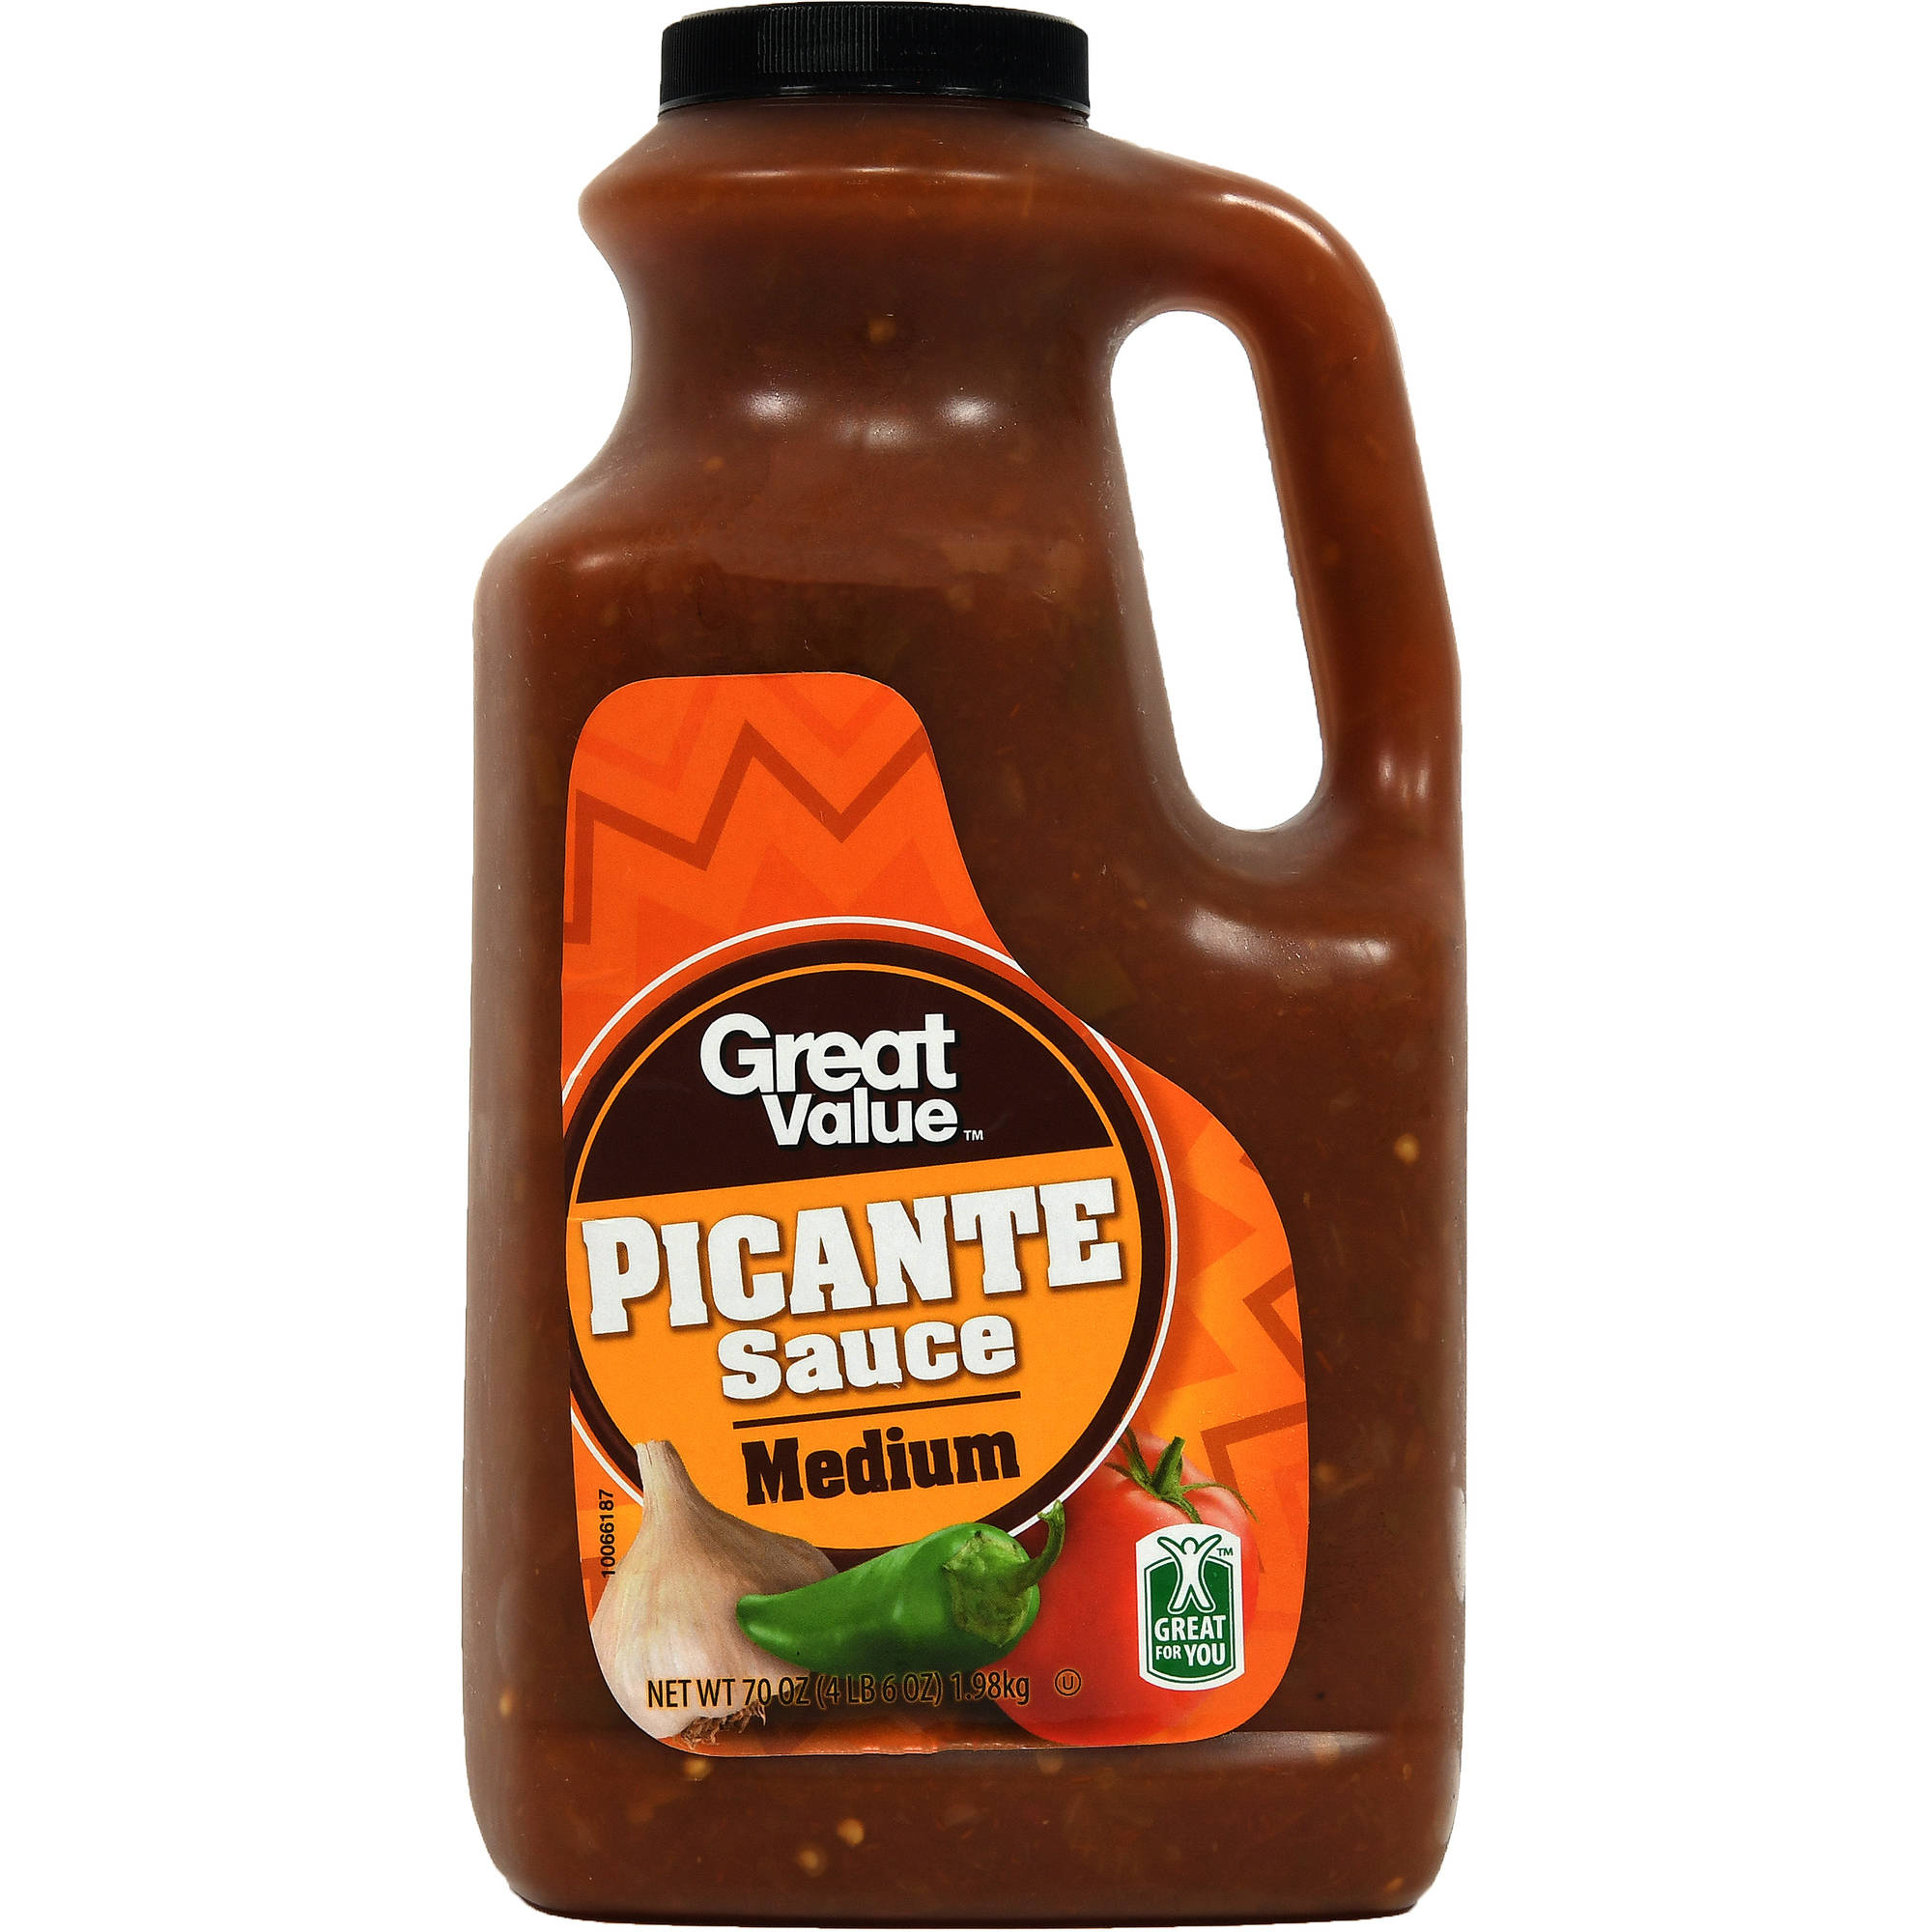 Great Value Medium Picante Sauce, 70 oz